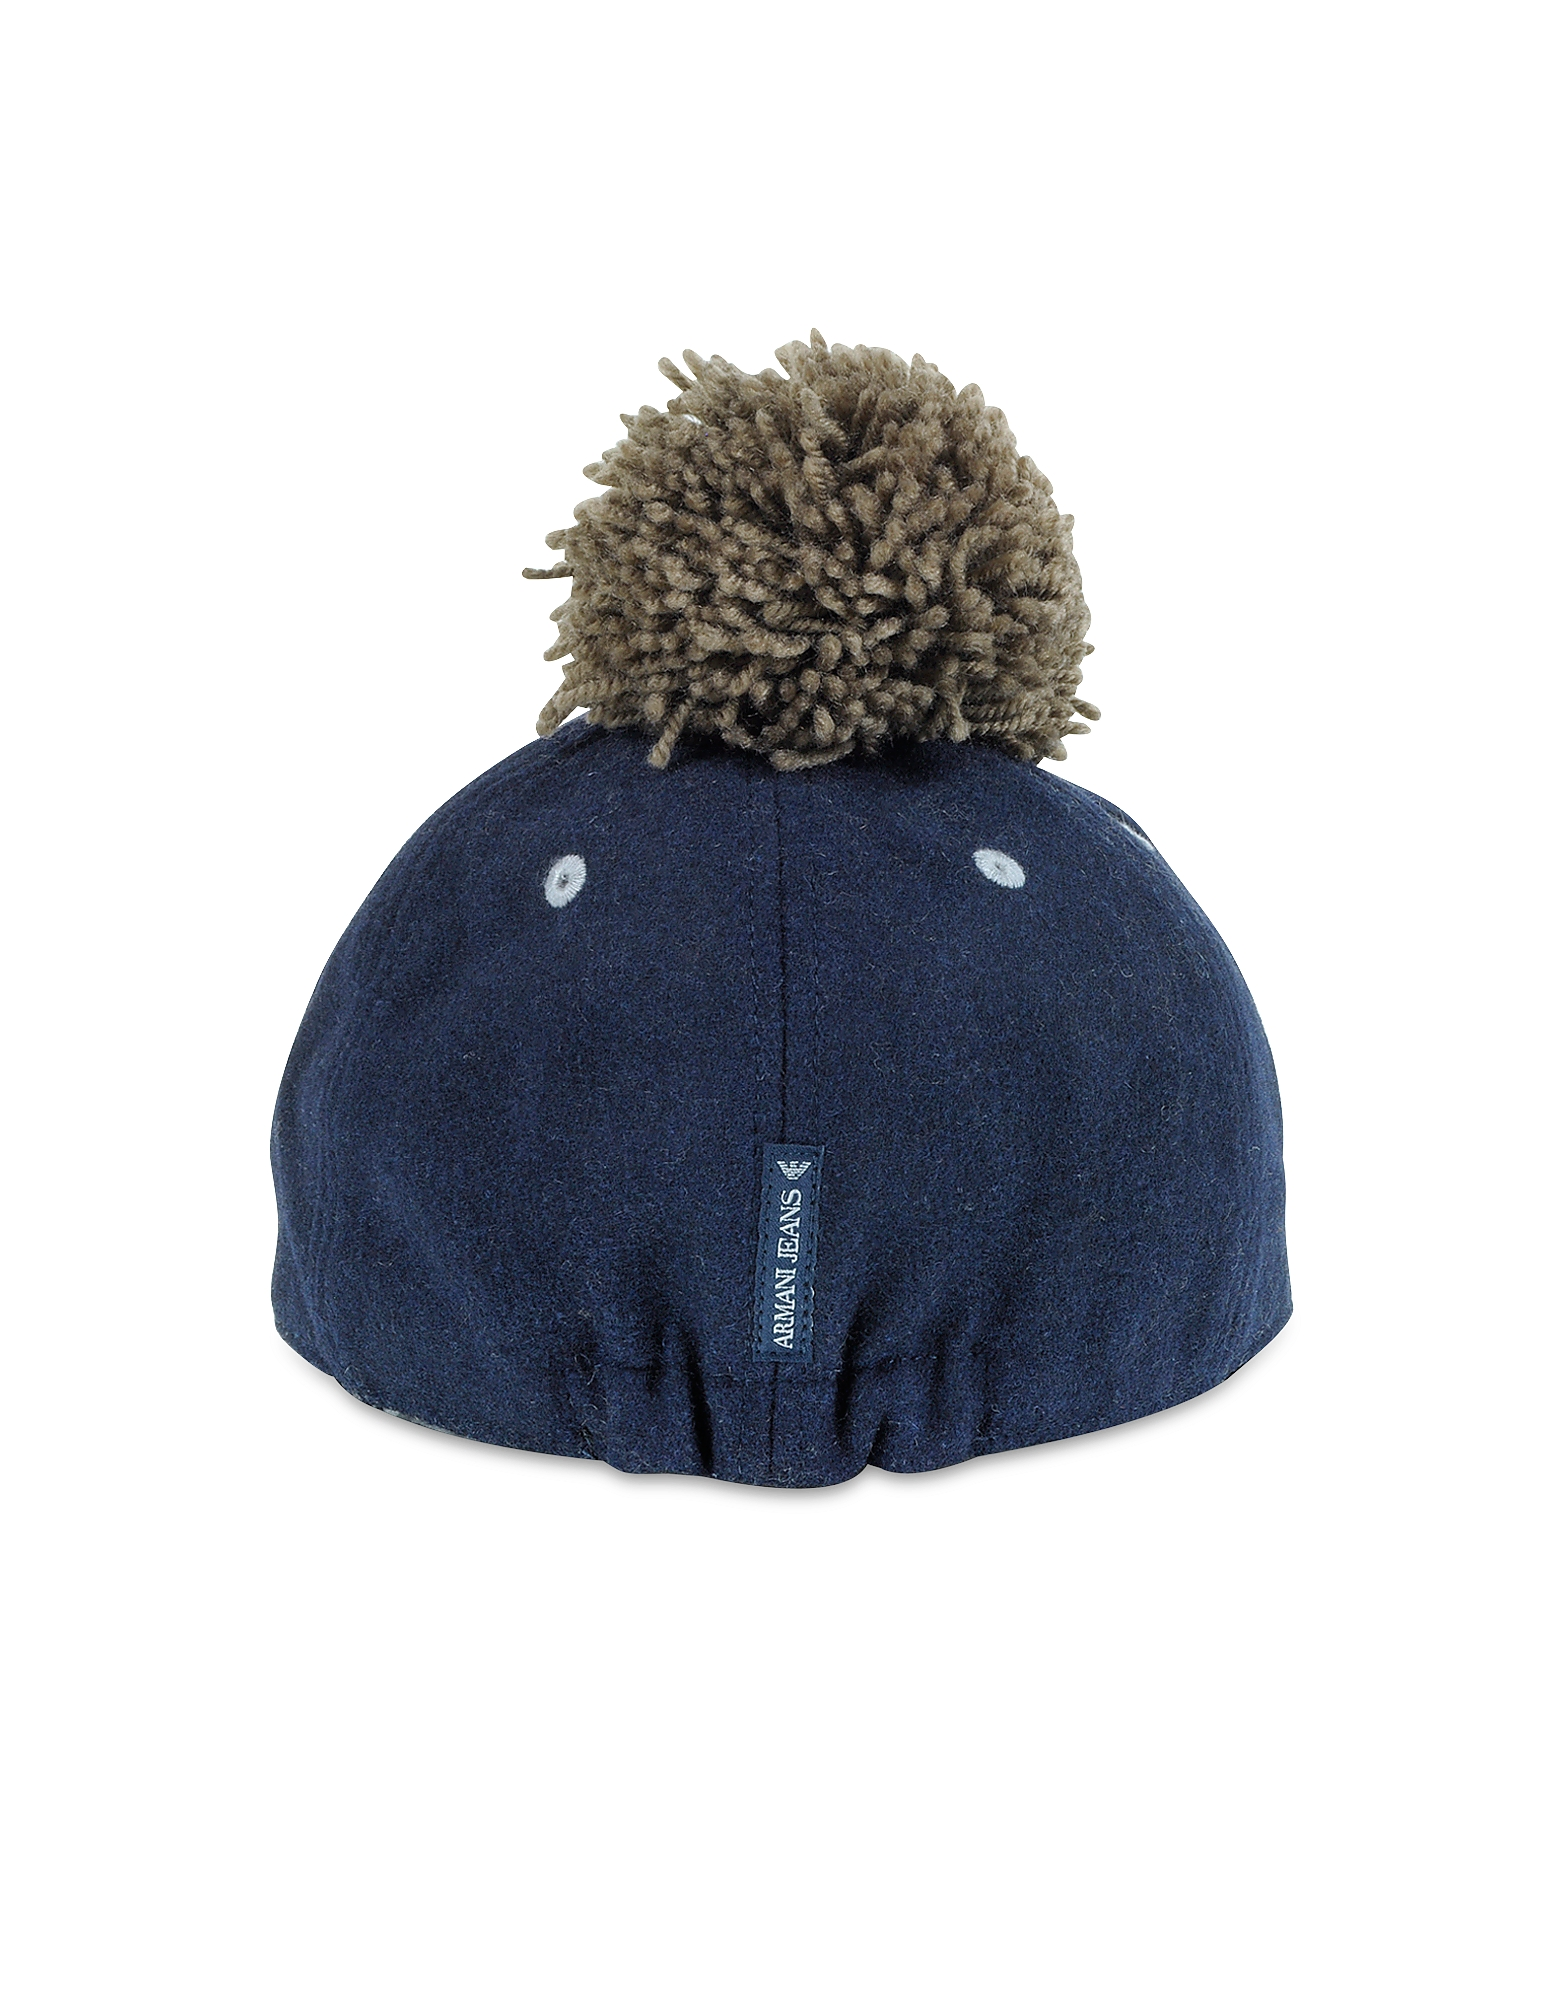 Blue and Gray Wool Blend Pom Pom Baseball Hat от Forzieri.com INT